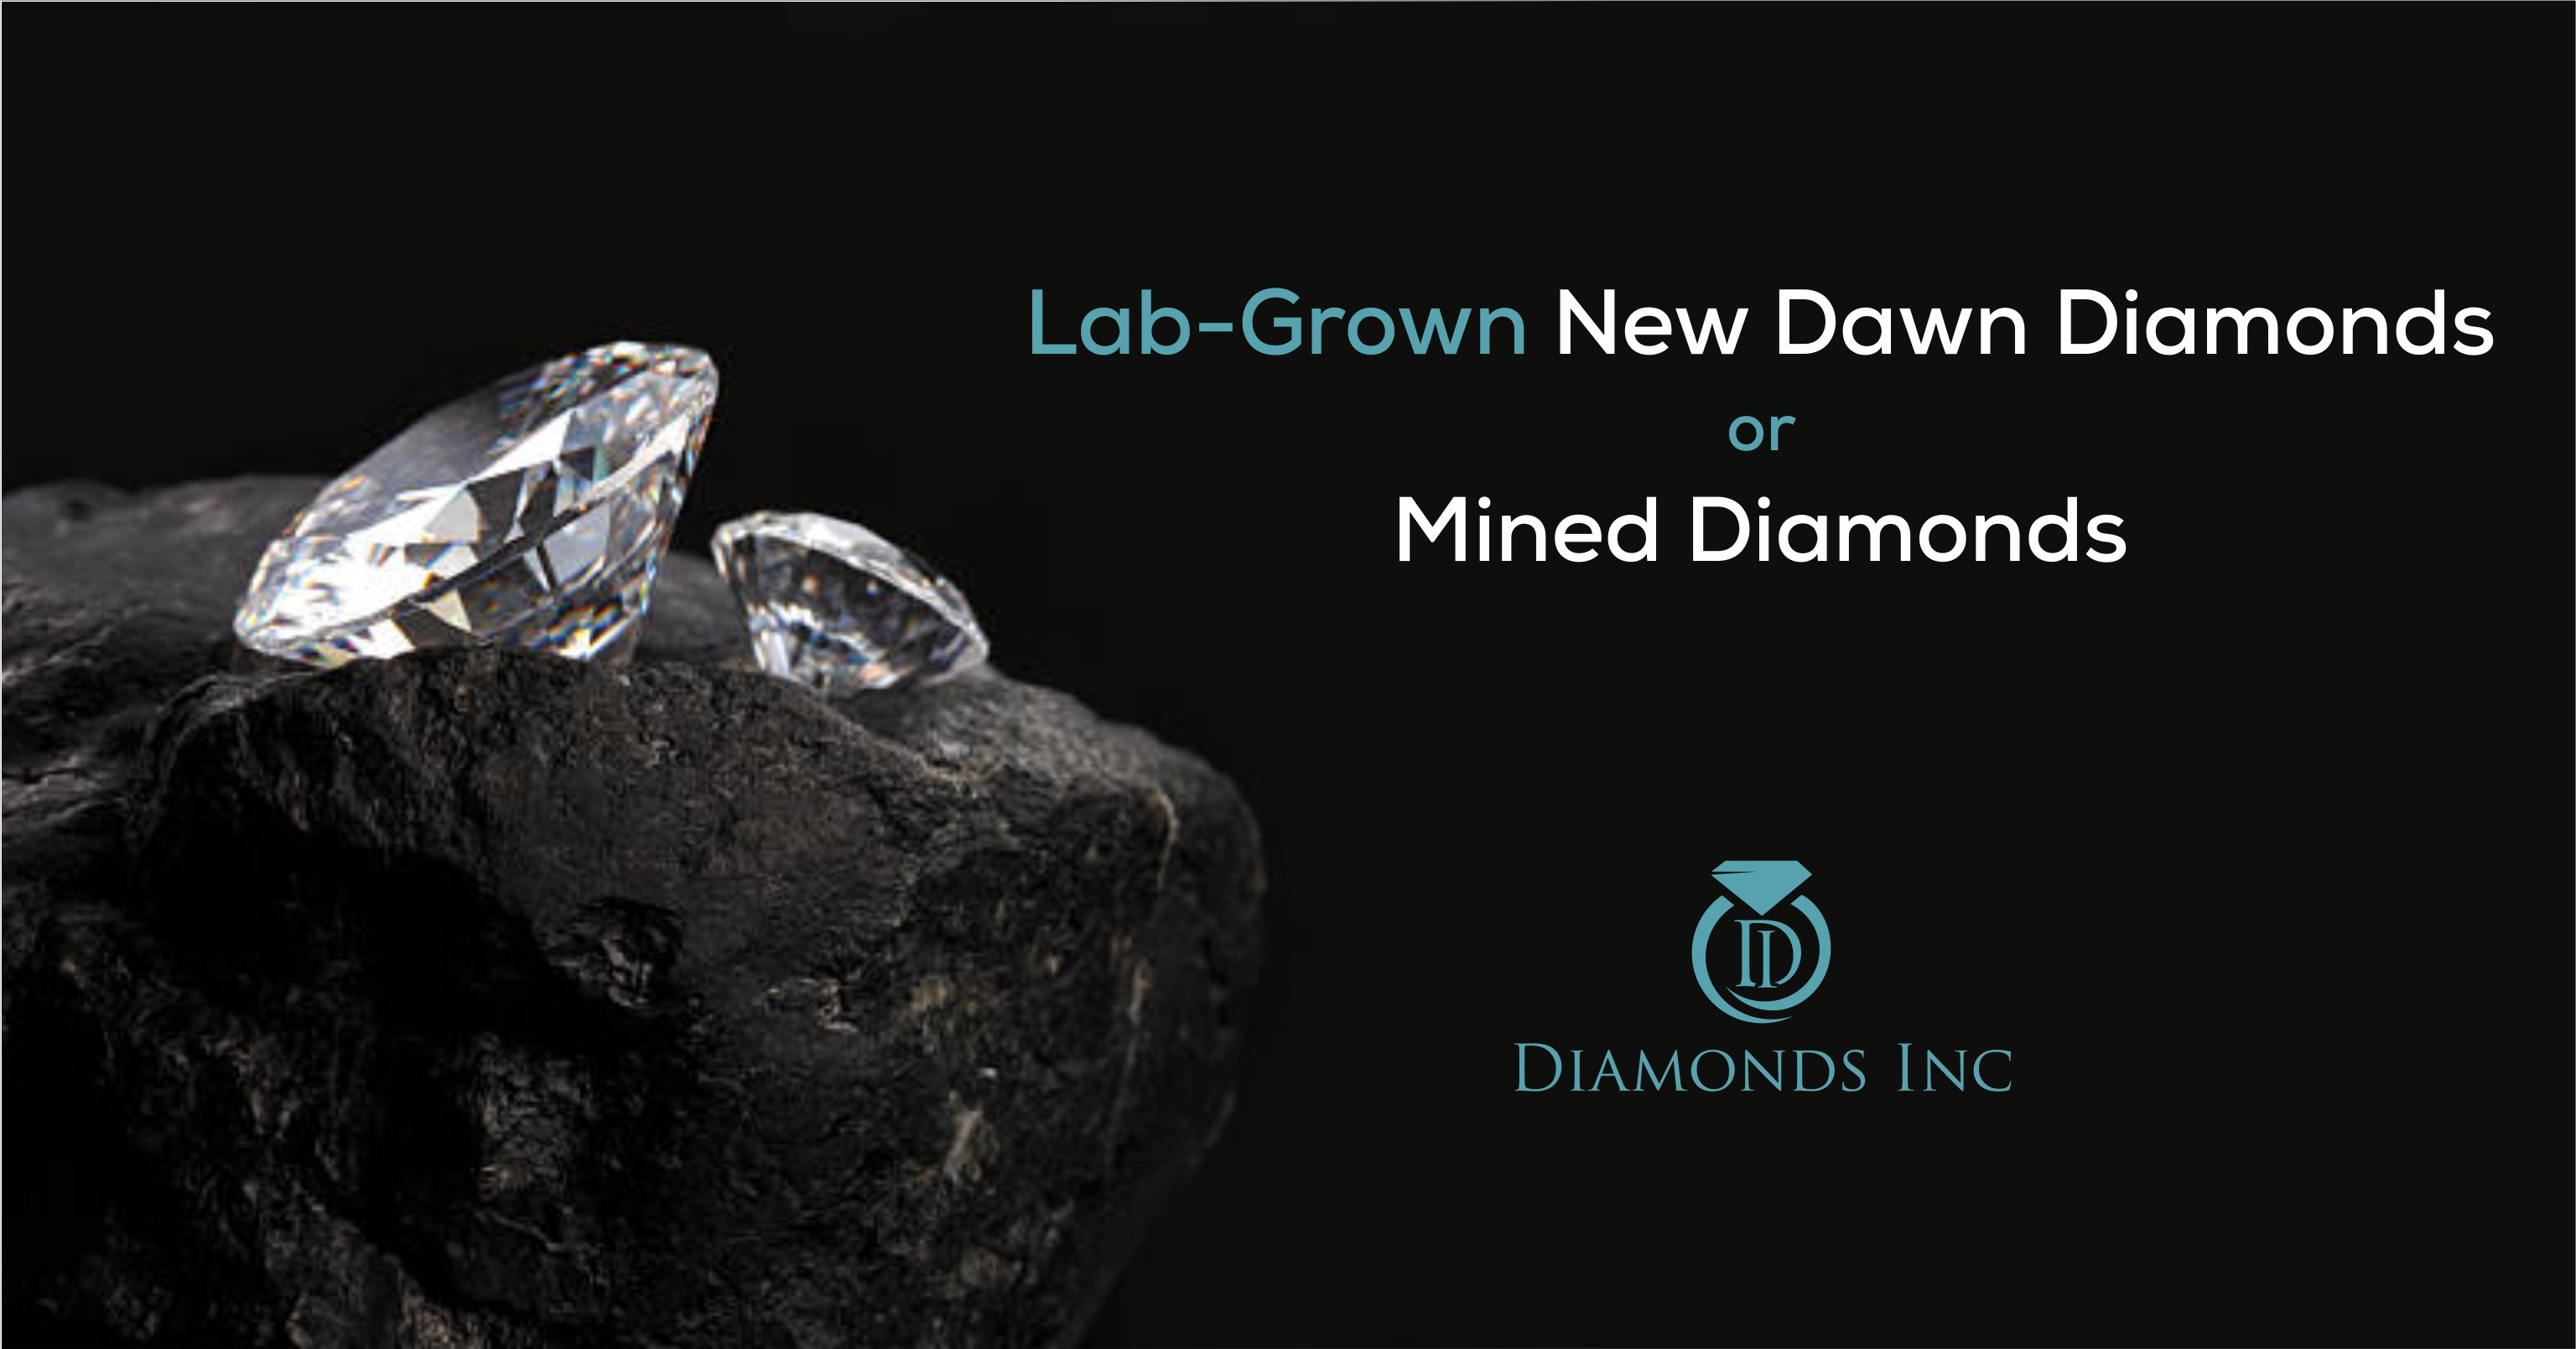 year the history in be news madestones will remembered diamonds diamond of grown breakthrough as final laboratory